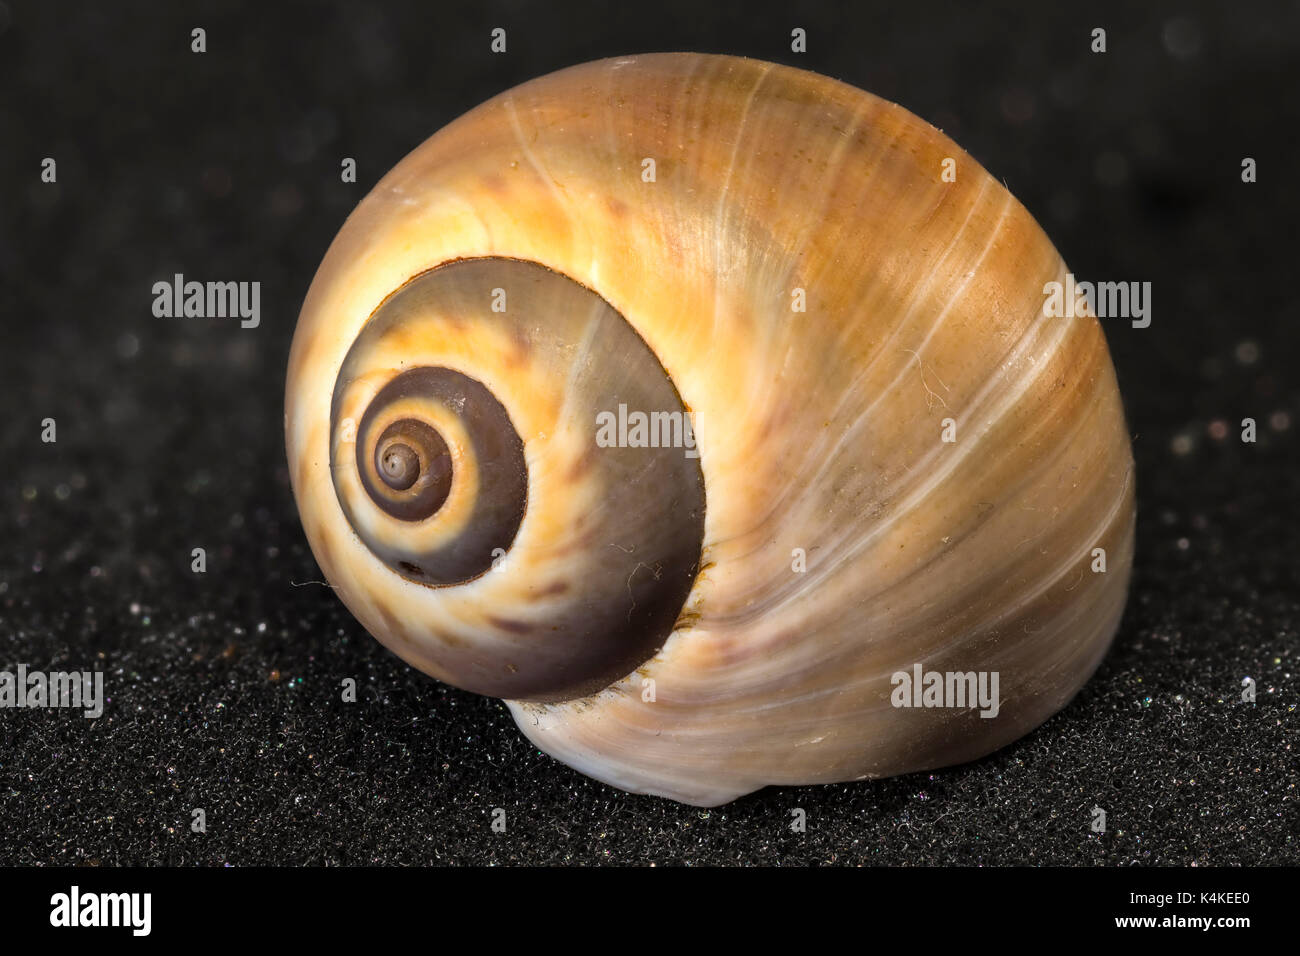 Snail house, free, Focus Stacking - Stock Image